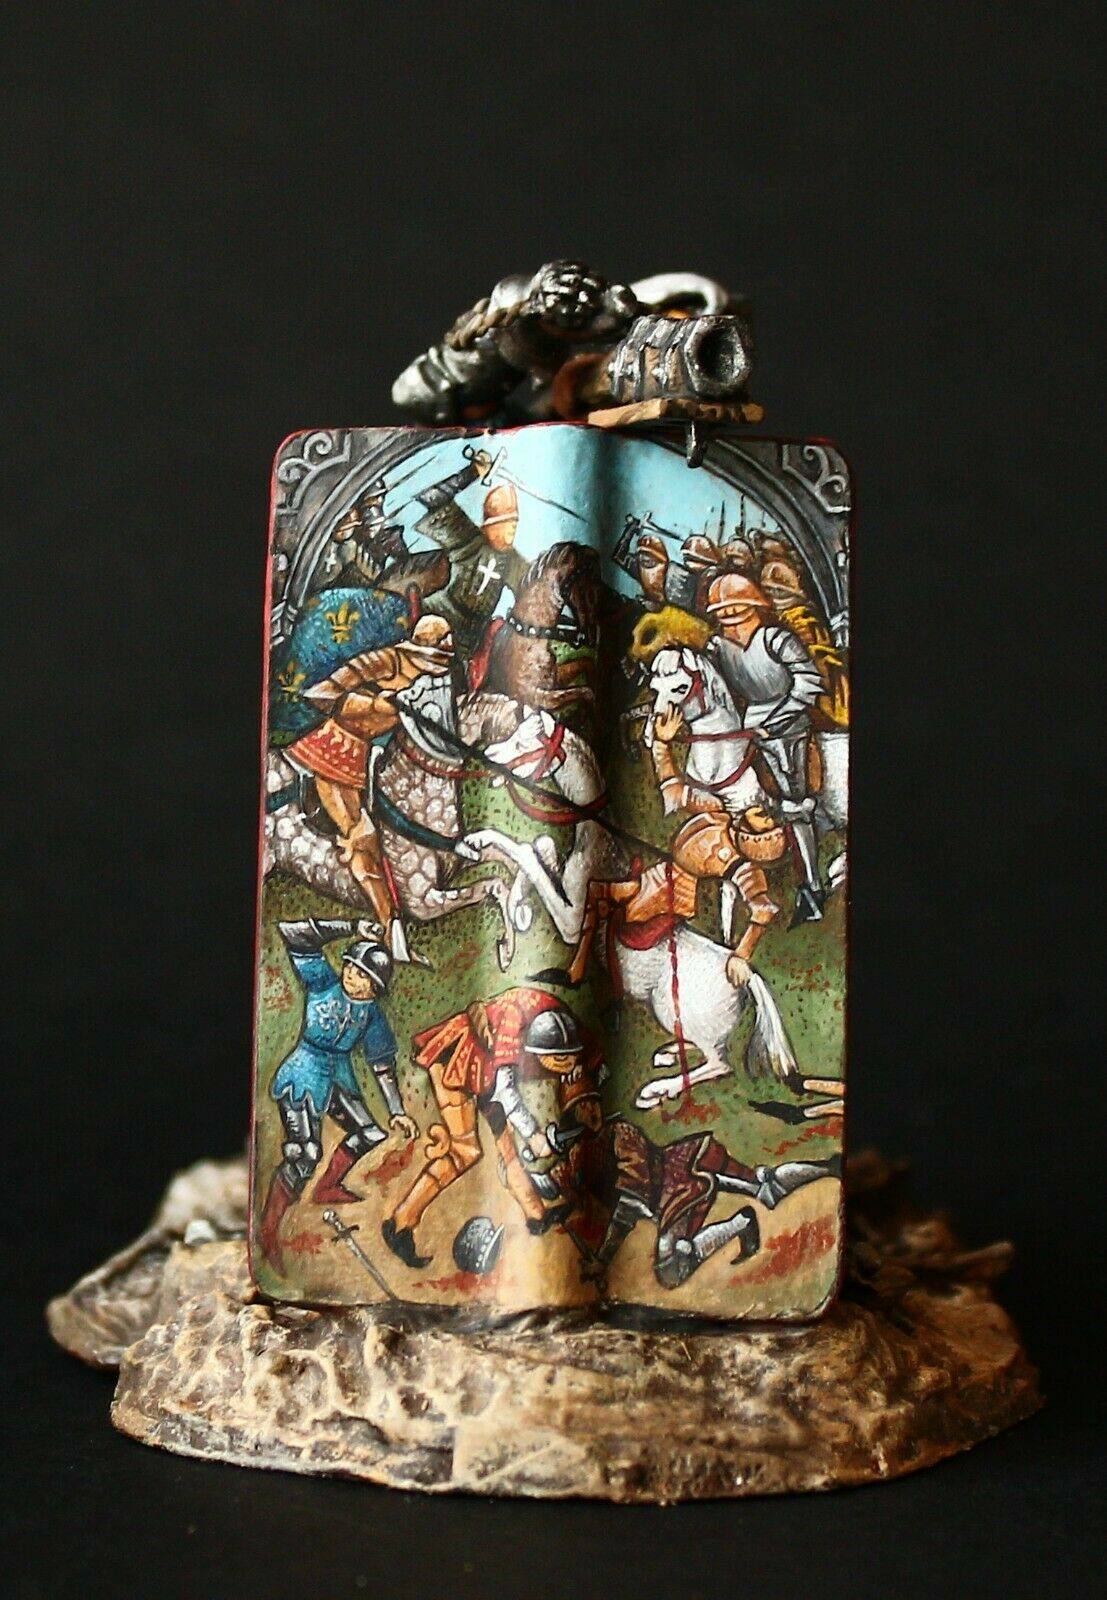 Tin soldier, Museum (TOP), Swiss Mercenary, Marignana, 54 mm, Renaissance